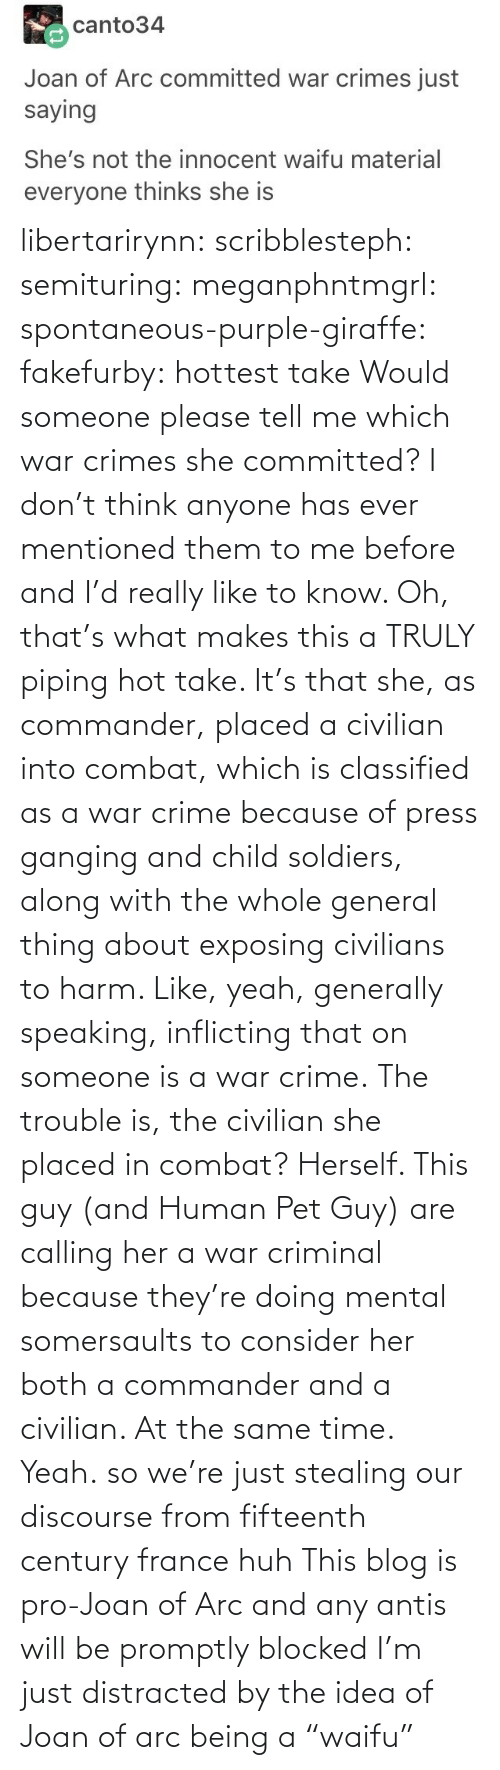 "Makes: libertarirynn: scribblesteph:  semituring:  meganphntmgrl:  spontaneous-purple-giraffe:   fakefurby: hottest take  Would someone please tell me which war crimes she committed? I don't think anyone has ever mentioned them to me before and I'd really like to know.    Oh, that's what makes this a TRULY piping hot take. It's that she, as commander, placed a civilian into combat, which is classified as a war crime because of press ganging and child soldiers, along with the whole general thing about exposing civilians to harm. Like, yeah, generally speaking, inflicting that on someone is a war crime. The trouble is, the civilian she placed in combat? Herself.  This guy (and Human Pet Guy) are calling her a war criminal because they're doing mental somersaults to consider her both a commander and a civilian. At the same time.  Yeah.  so we're just stealing our discourse from fifteenth century france huh   This blog is pro-Joan of Arc and any antis will be promptly blocked   I'm just distracted by the idea of Joan of arc being a ""waifu"""